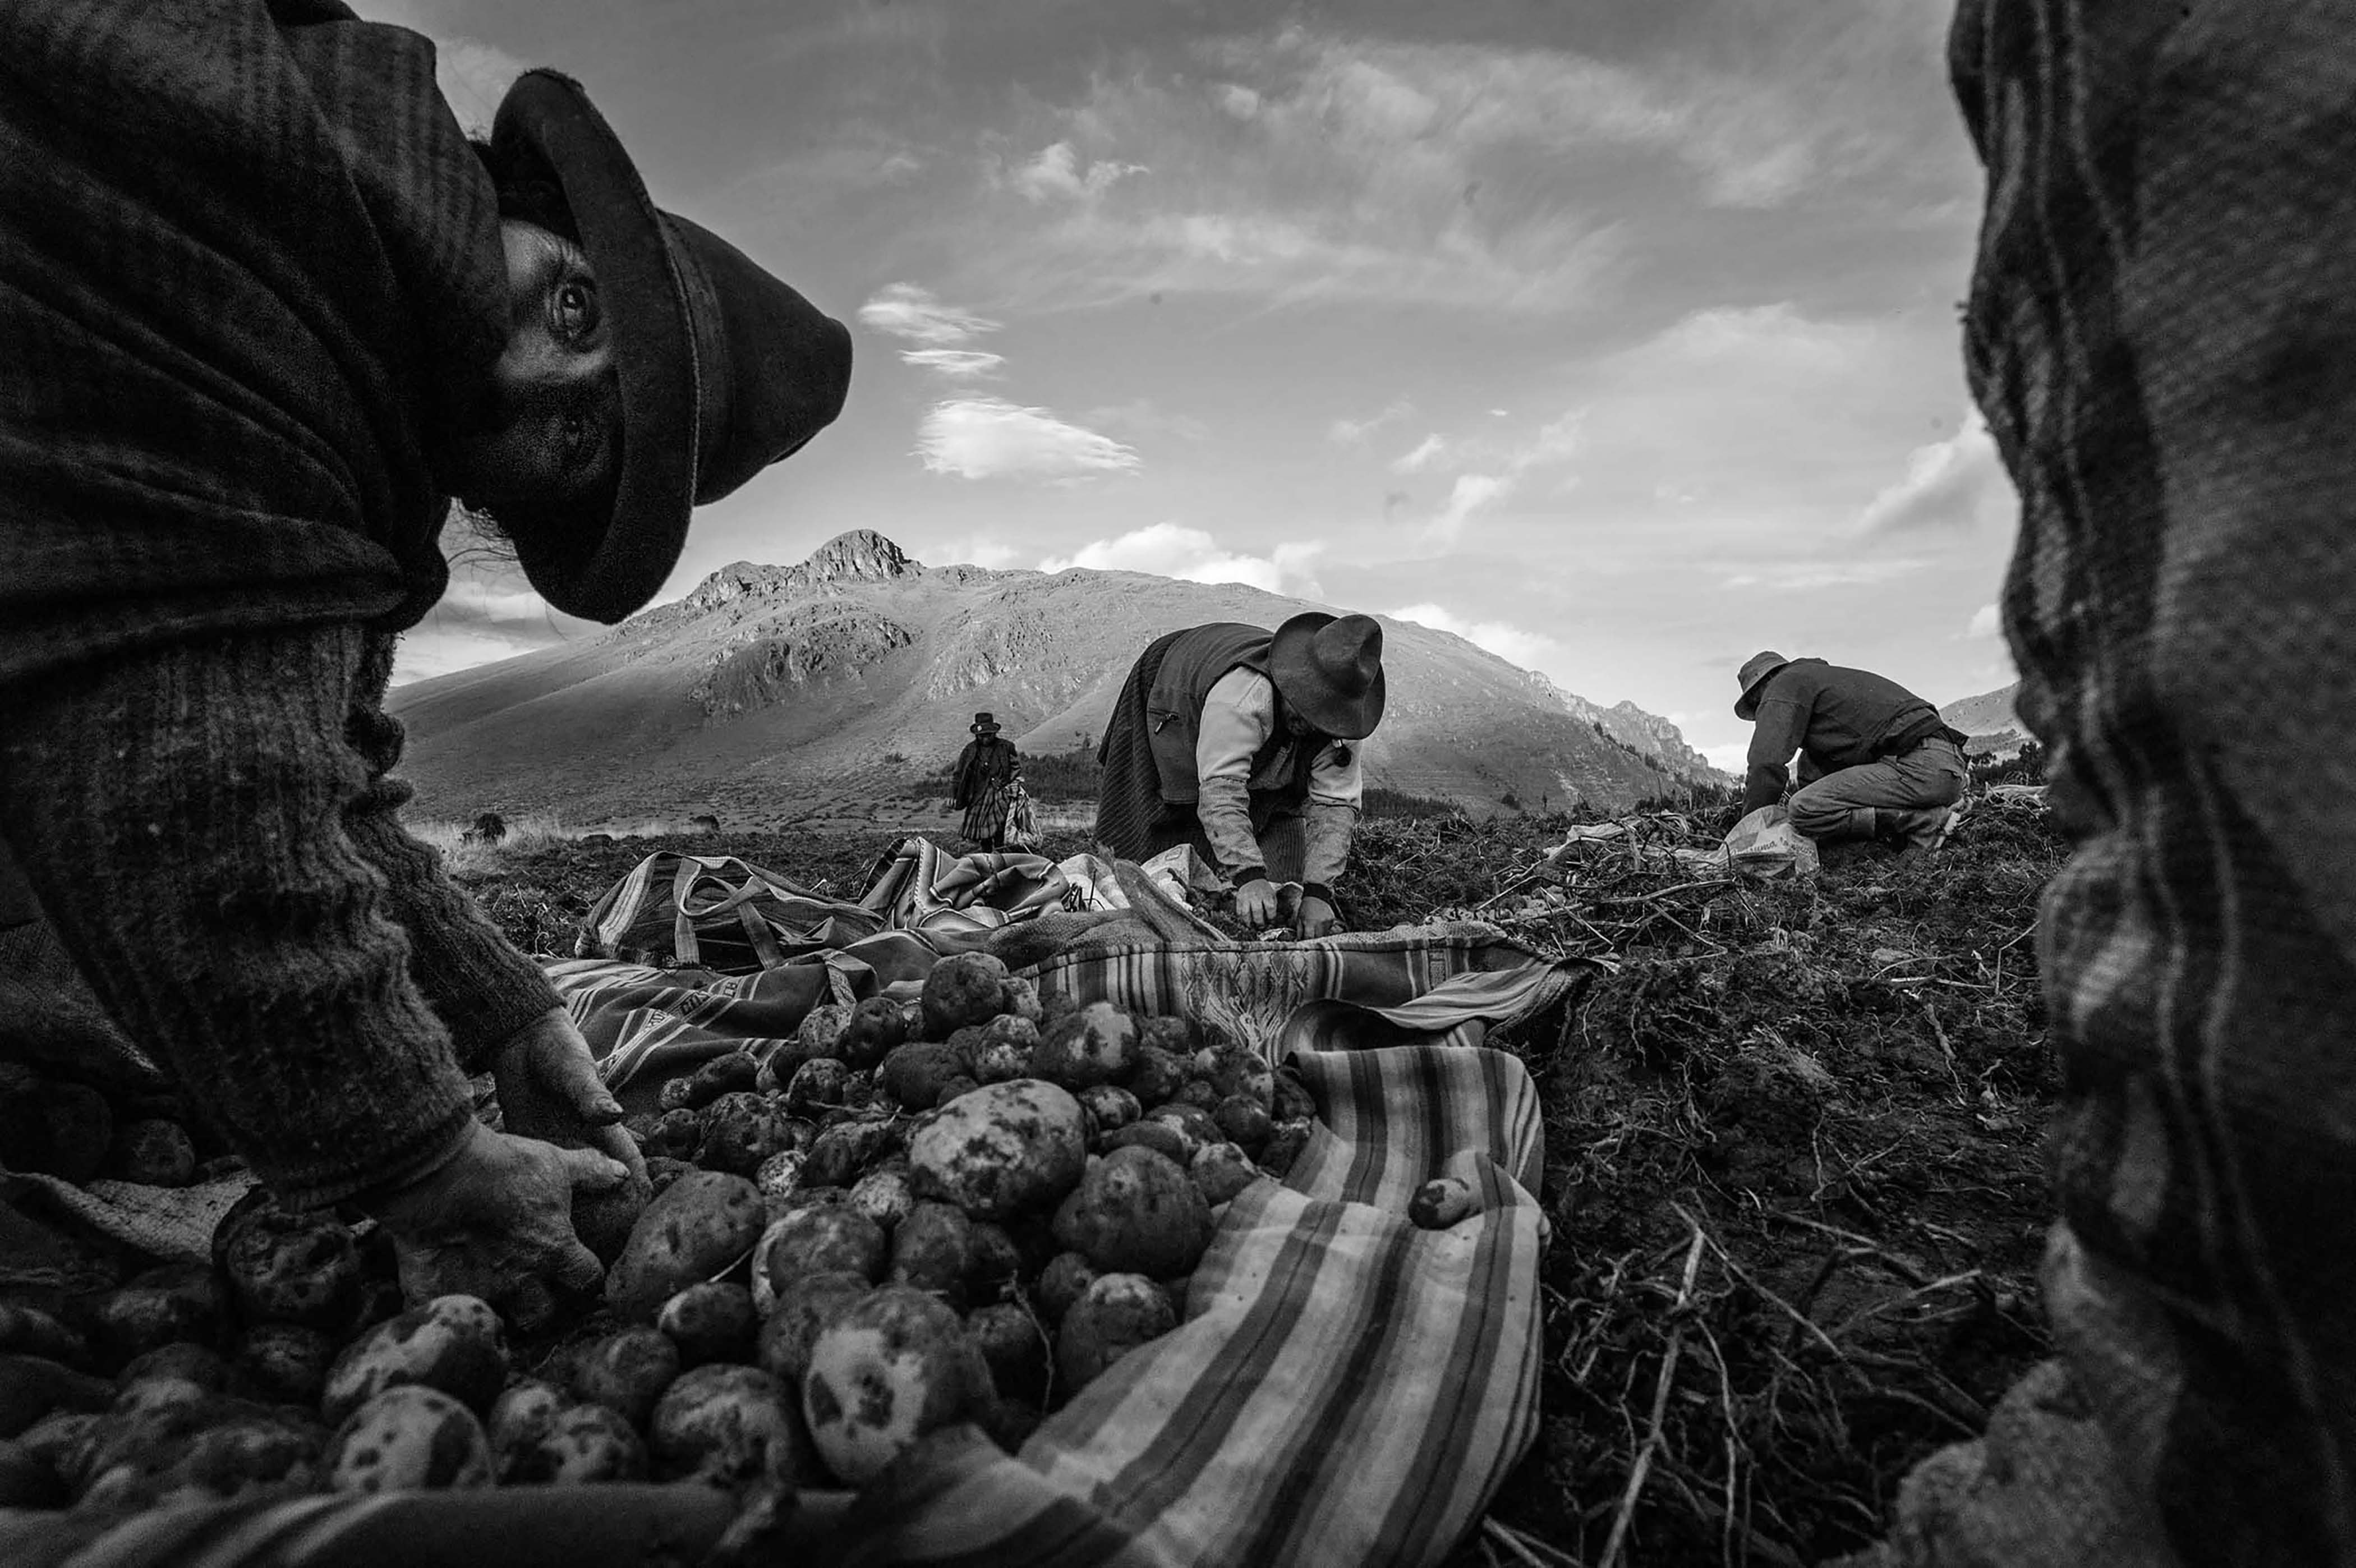 Women harvest potatoes which are one of the major staple crops in the Sacred Valley. (Photo by Alessandro Cinque/GroundTruth)